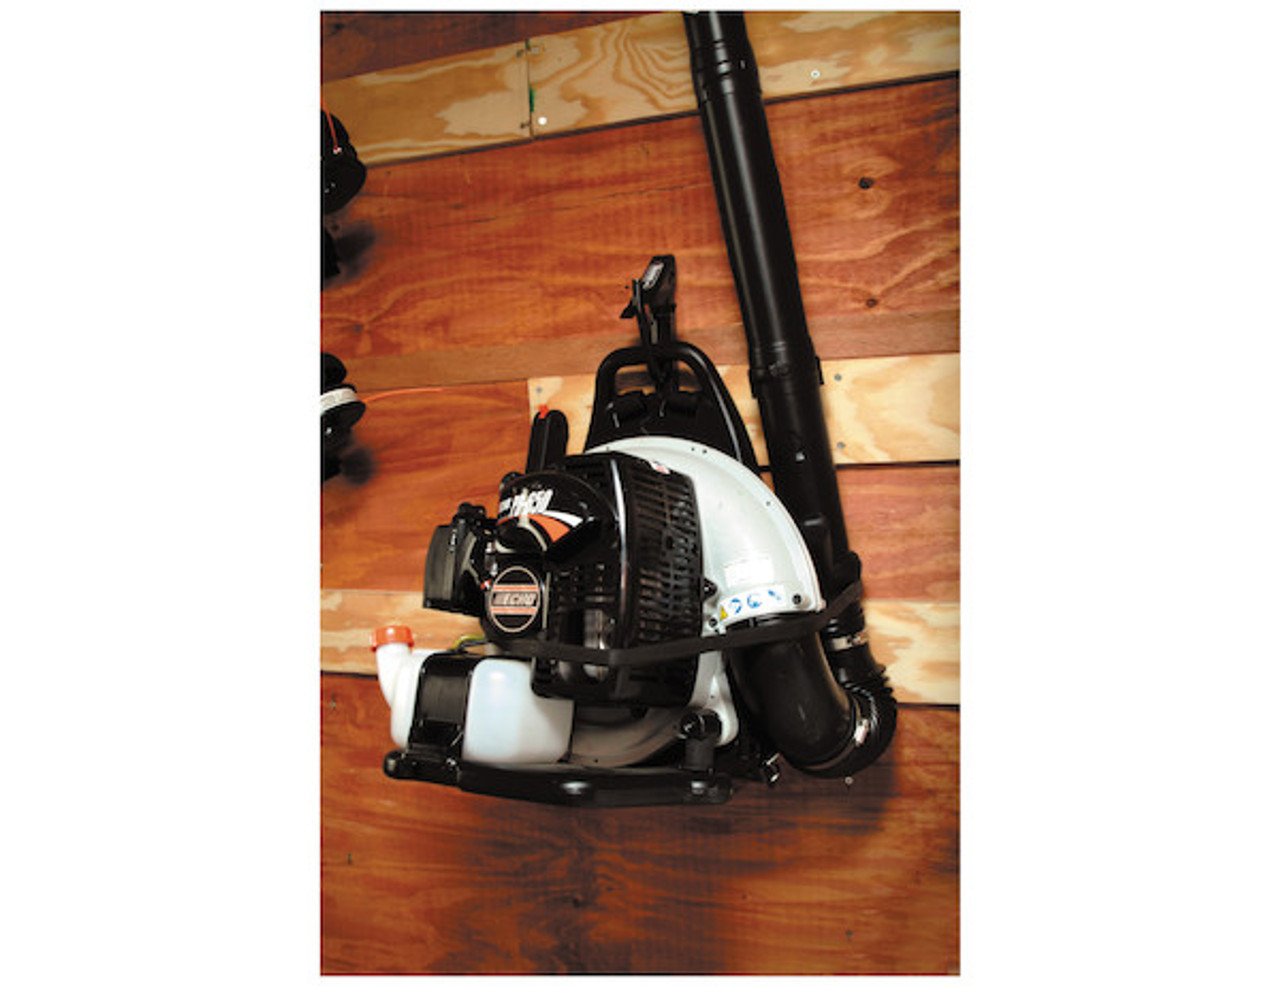 Buyers LT20 Backpack Blower Rack for Landscaping Trailers Picture # 2